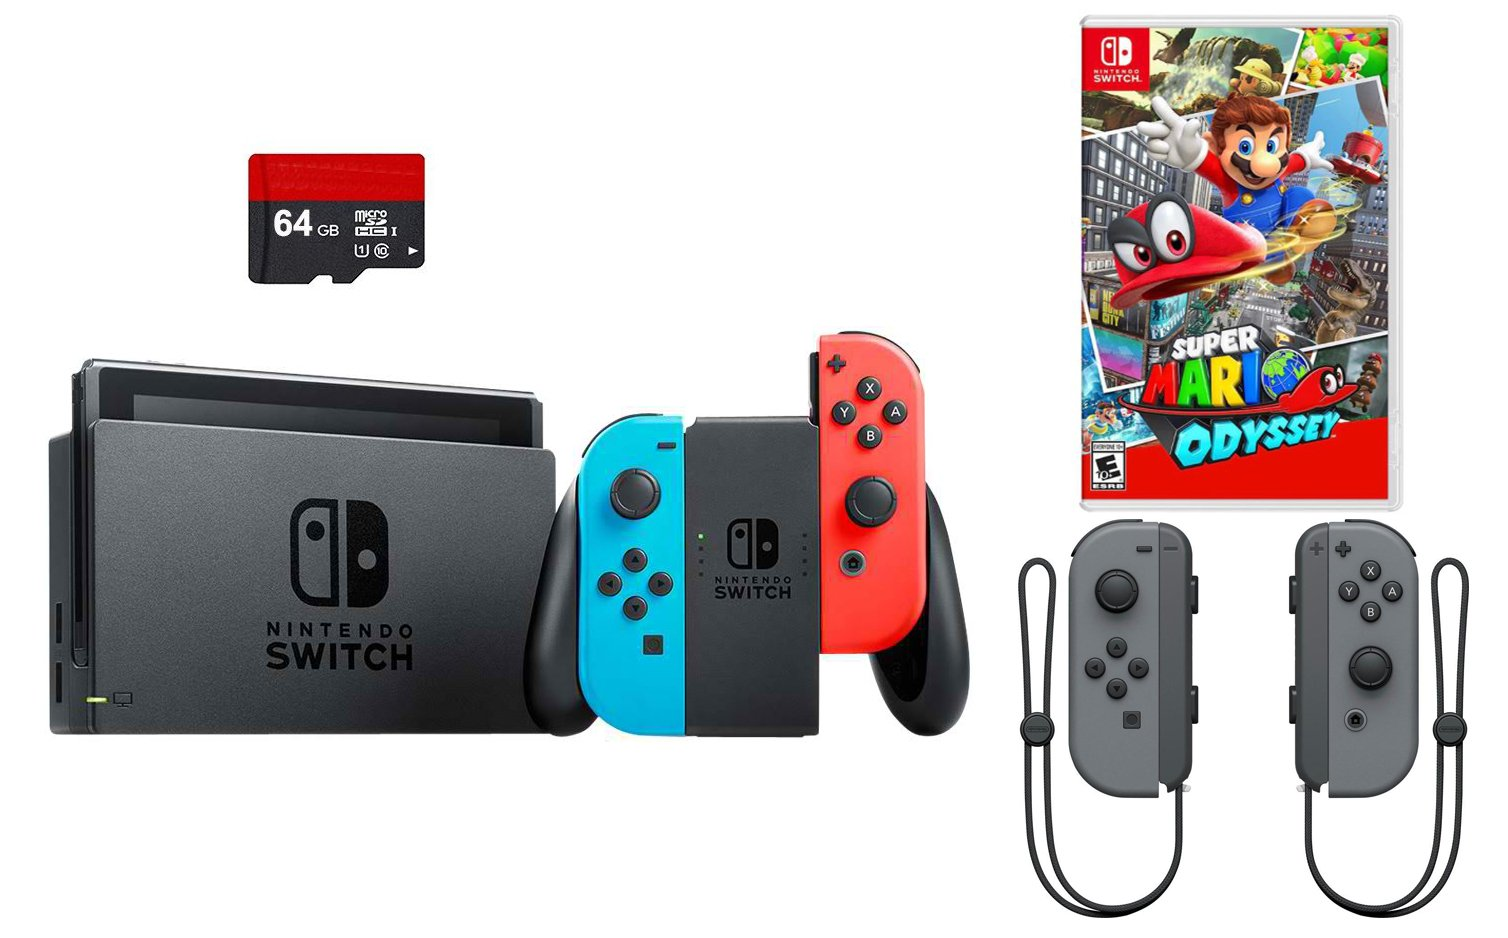 Nintendo Switch 4 items Bundle:Nintendo Switch 32GB Console Red and Blue Joy-con,64GB Micro SD Memory Card and an Extra Pair of Nintendo Joy-Con (L/R) Wireless Controllers Gray, Super Mario Odyssey